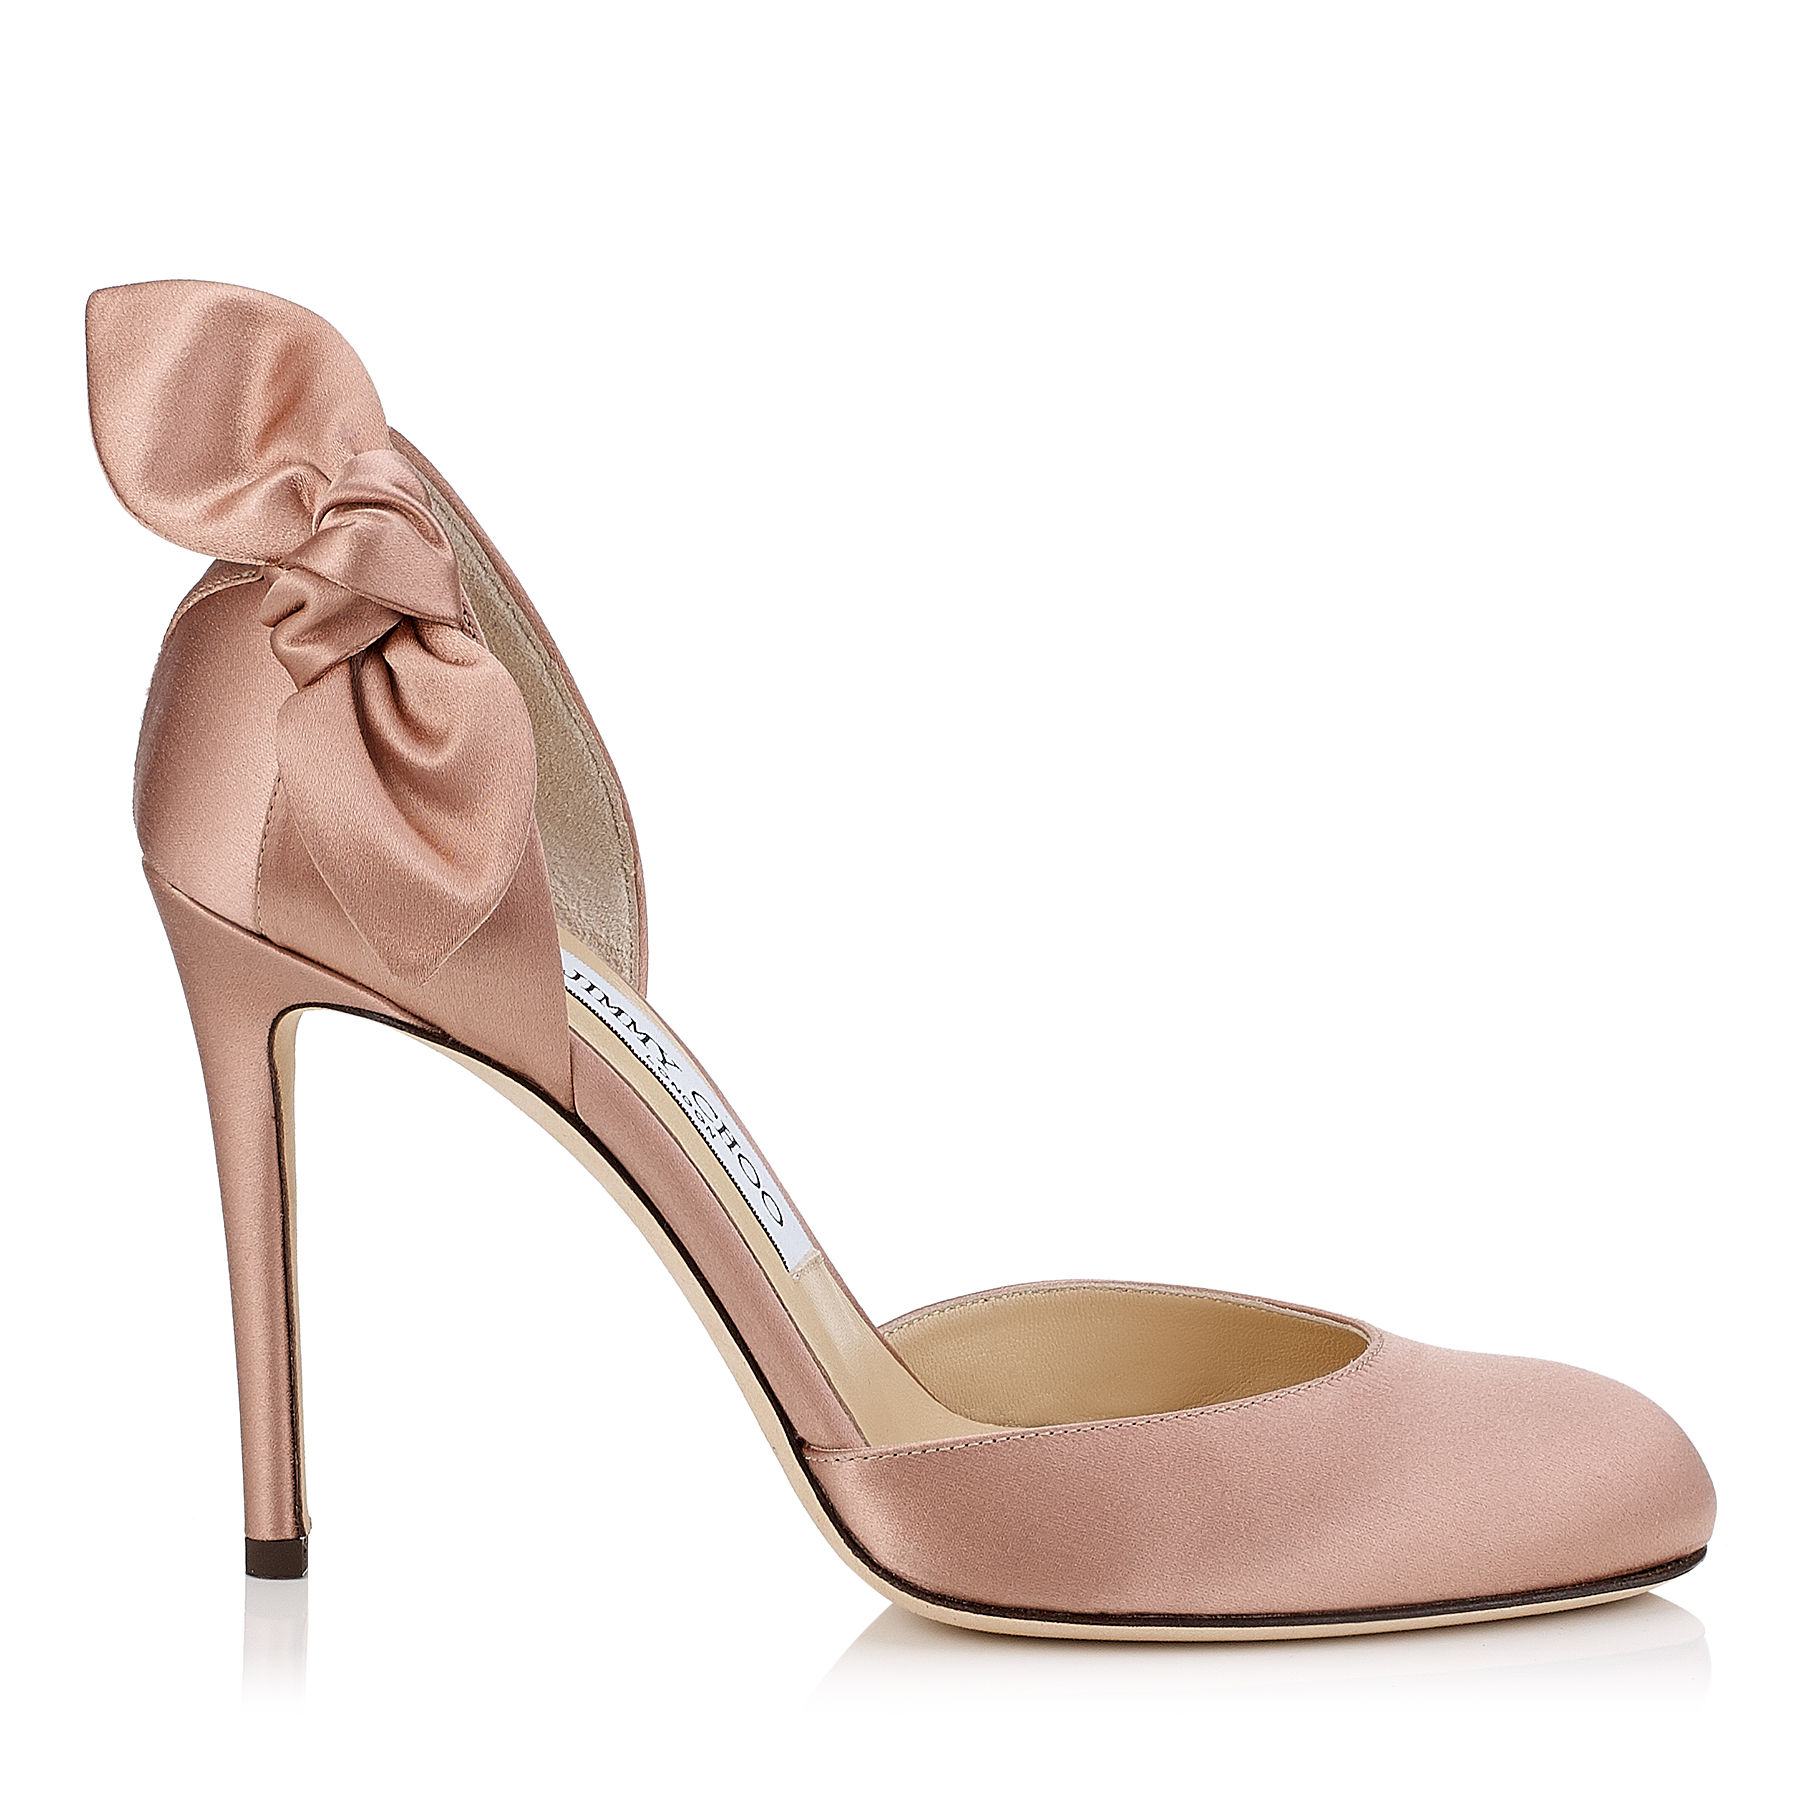 Pumps in satin